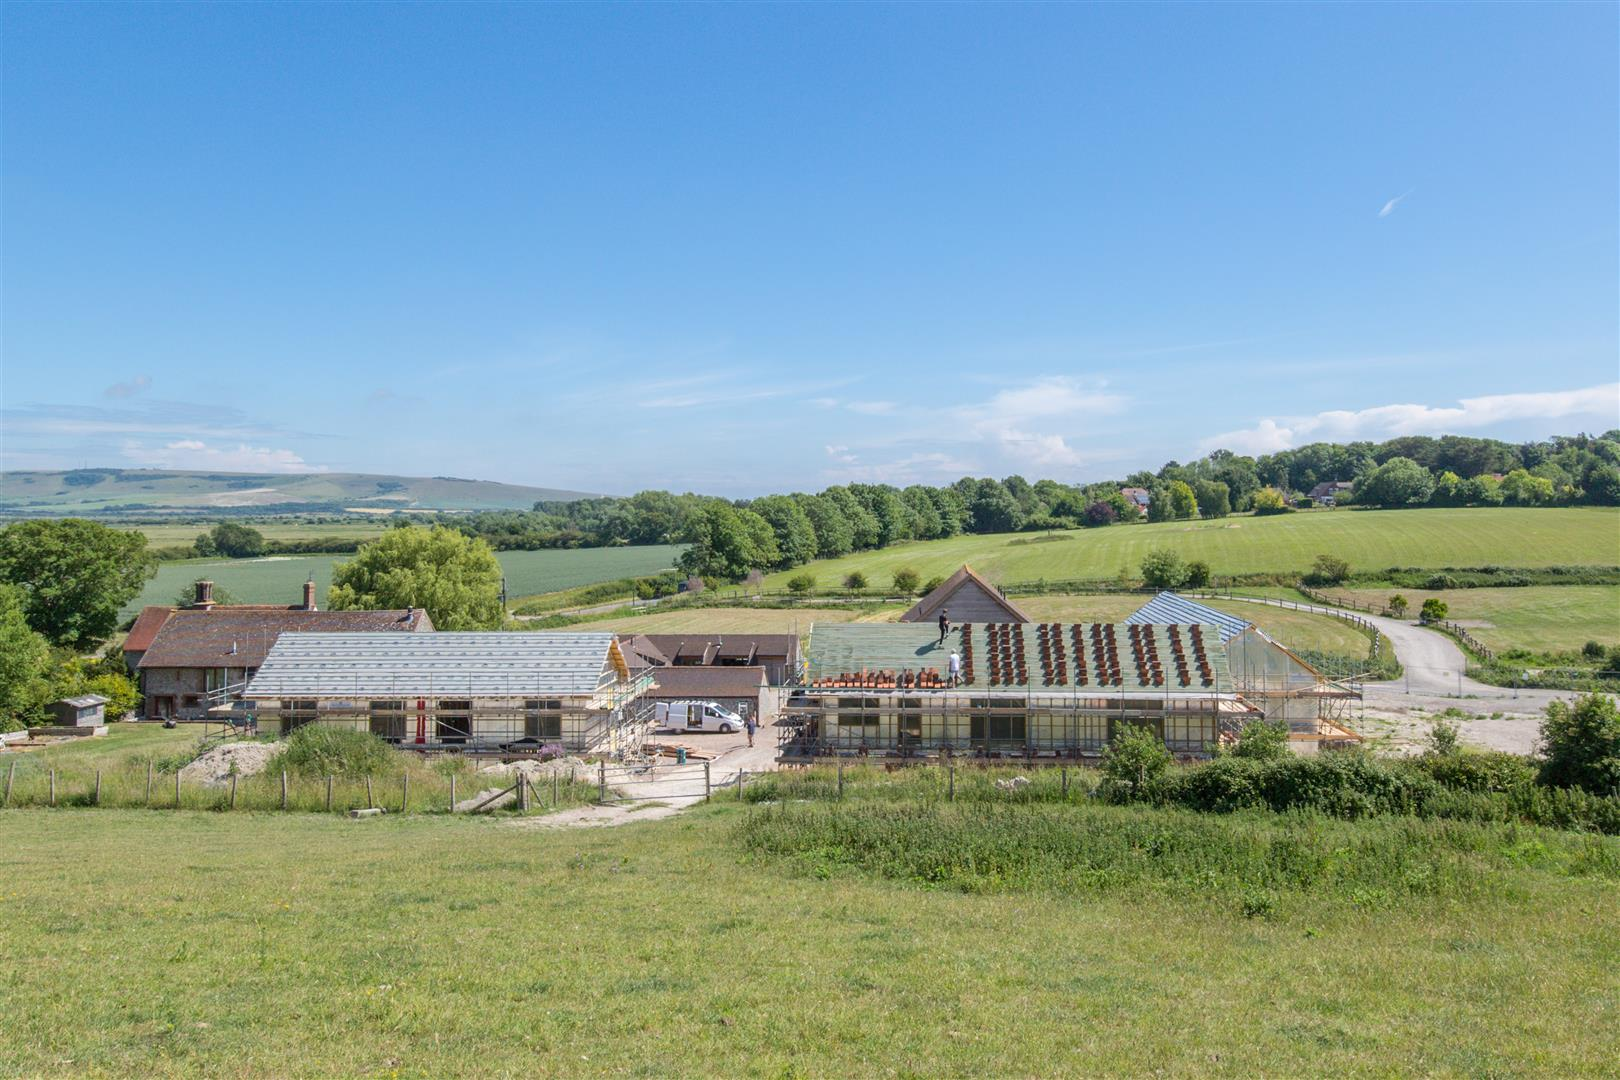 Spring Barn Farm Development-9.jpg